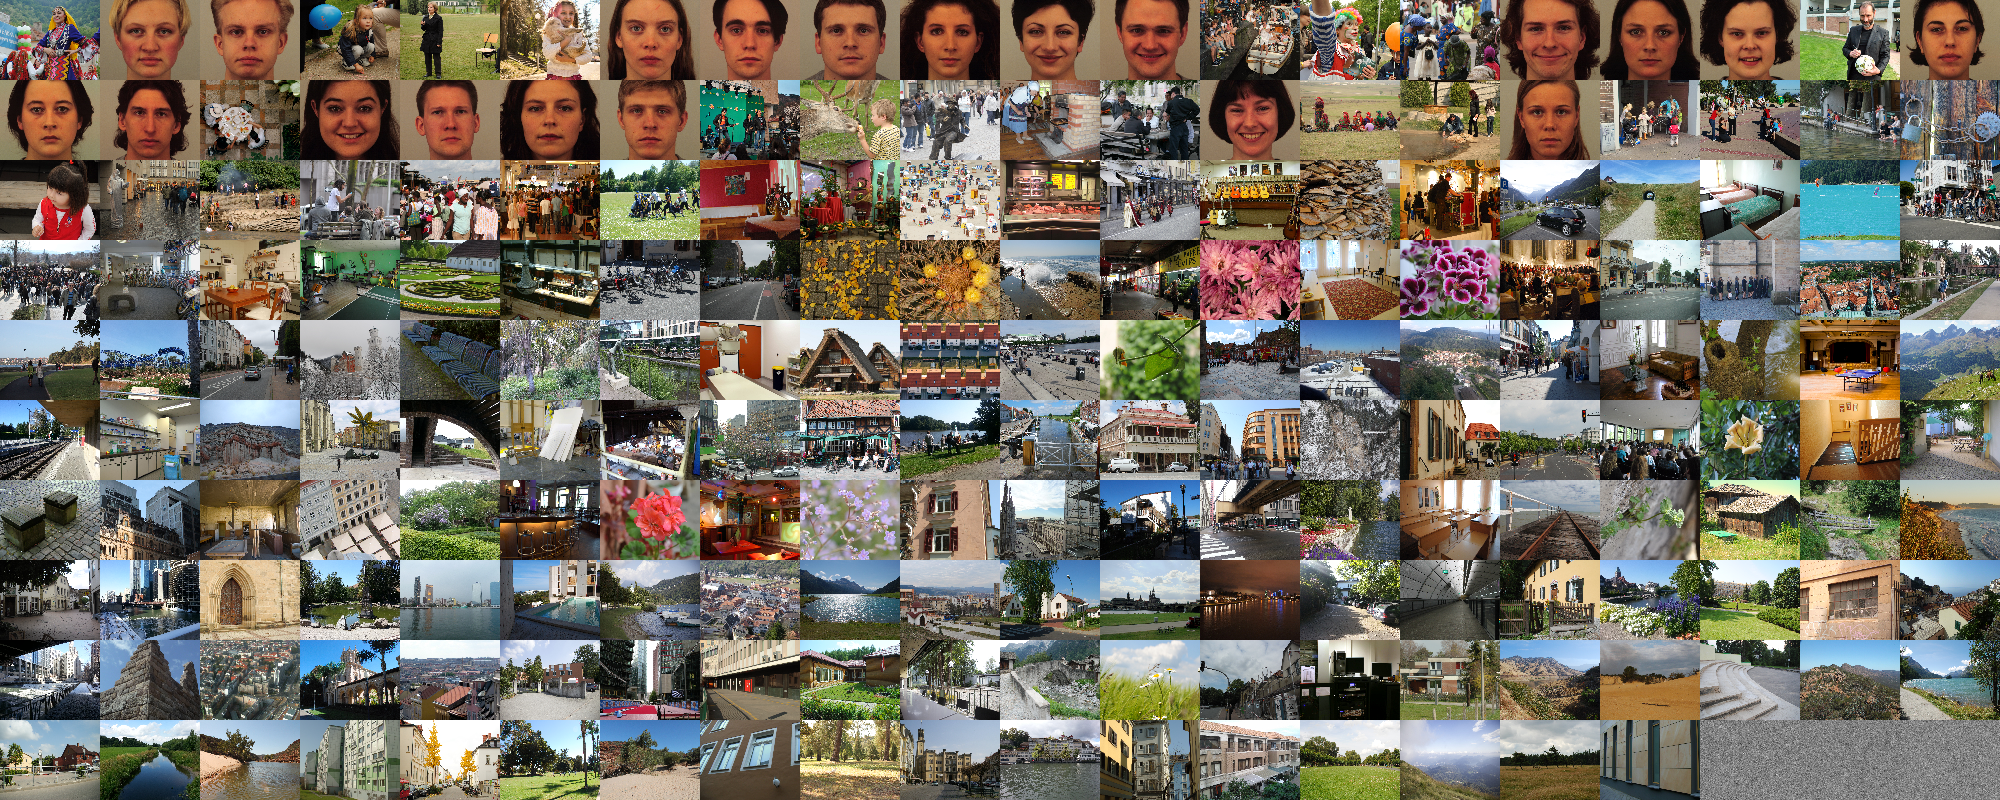 Images used in the eye-tracking experiment, sorted by their global visual salience, from left to right, and top to bottom.